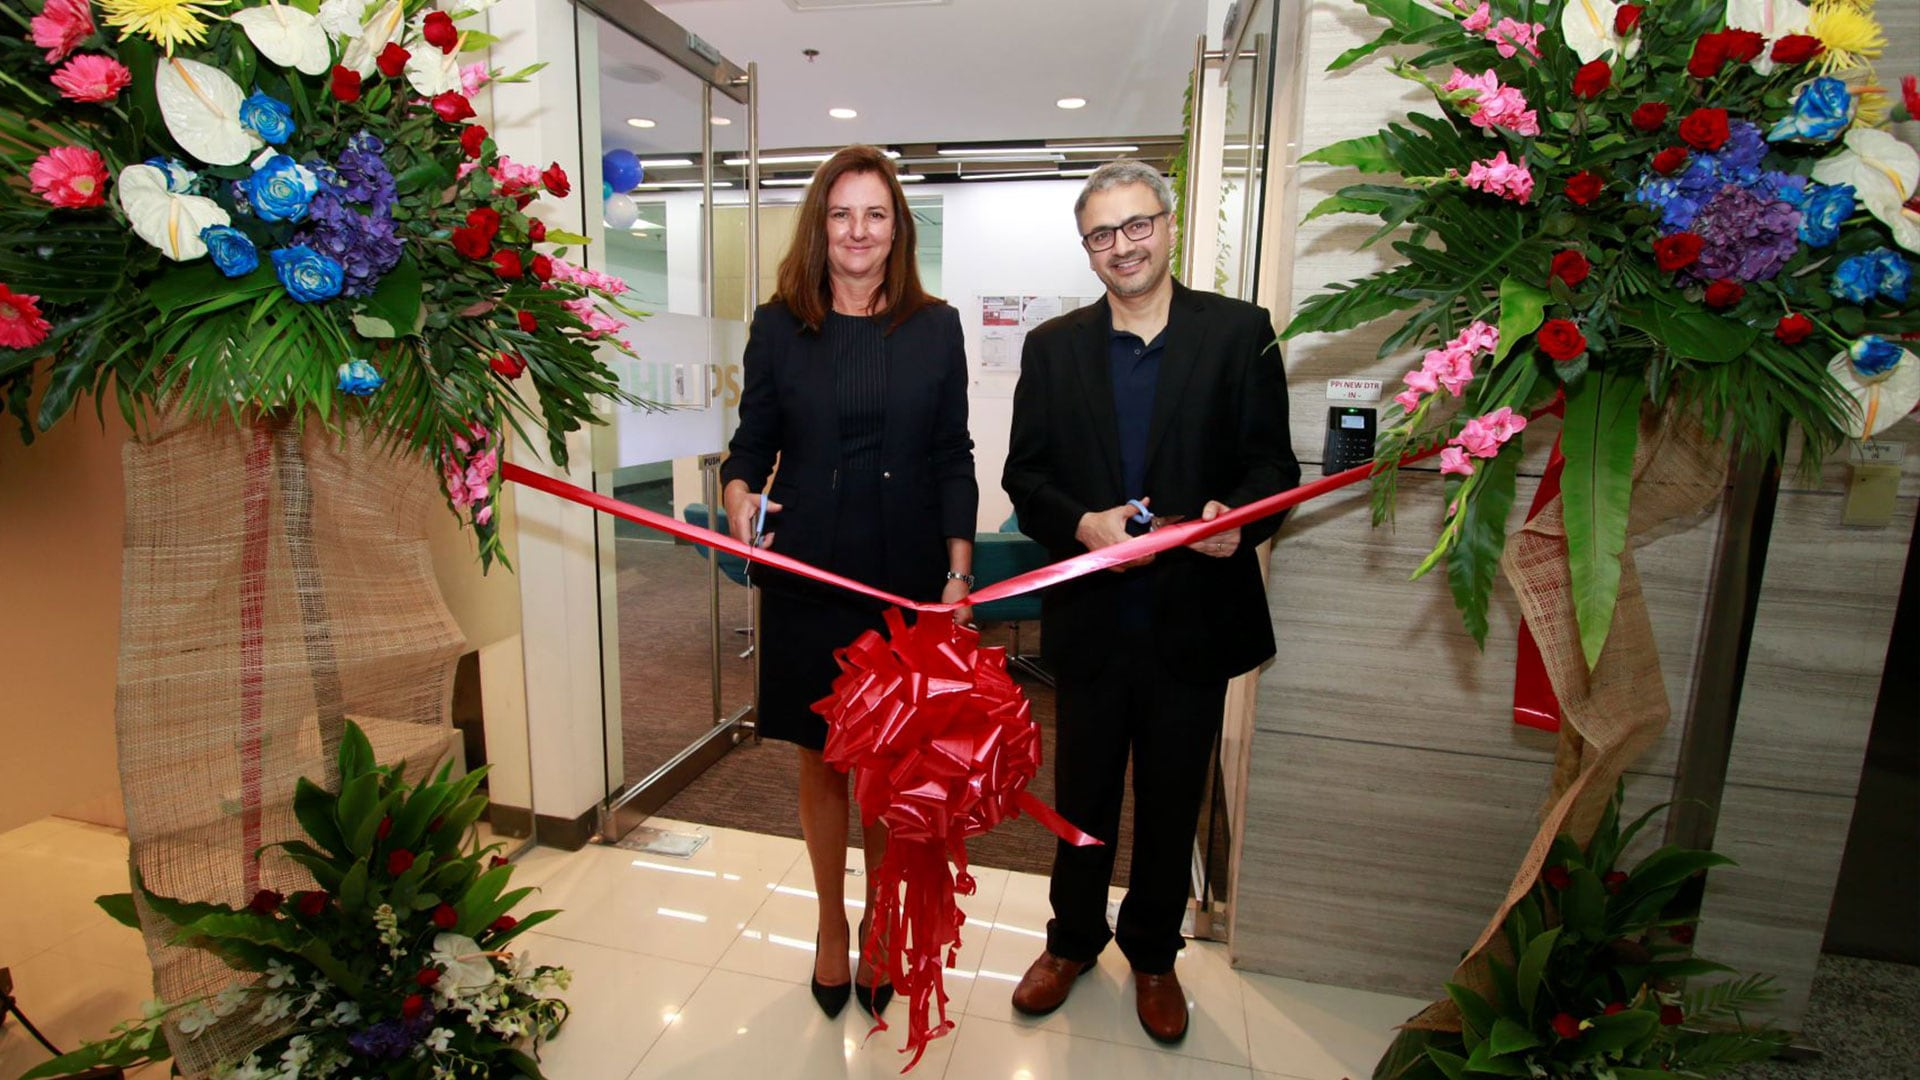 Caroline Clarke and Ashwin Chari during the ribbon cutting ceremony for the new Philips Philippines opening